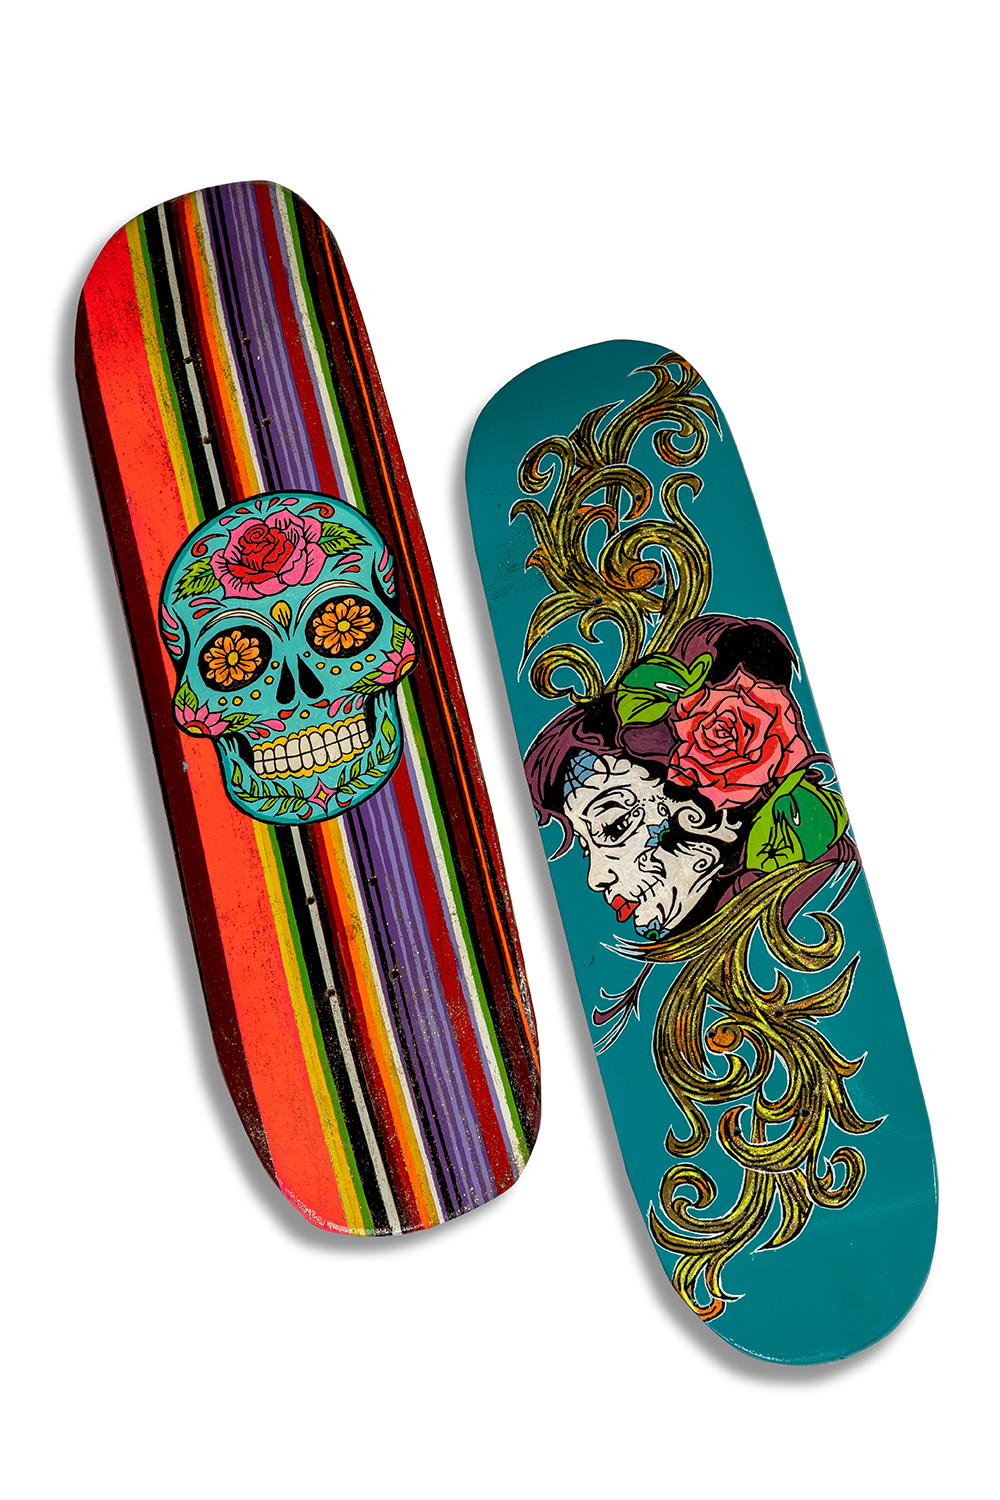 Calaveras Series By Nicolas Simon 4